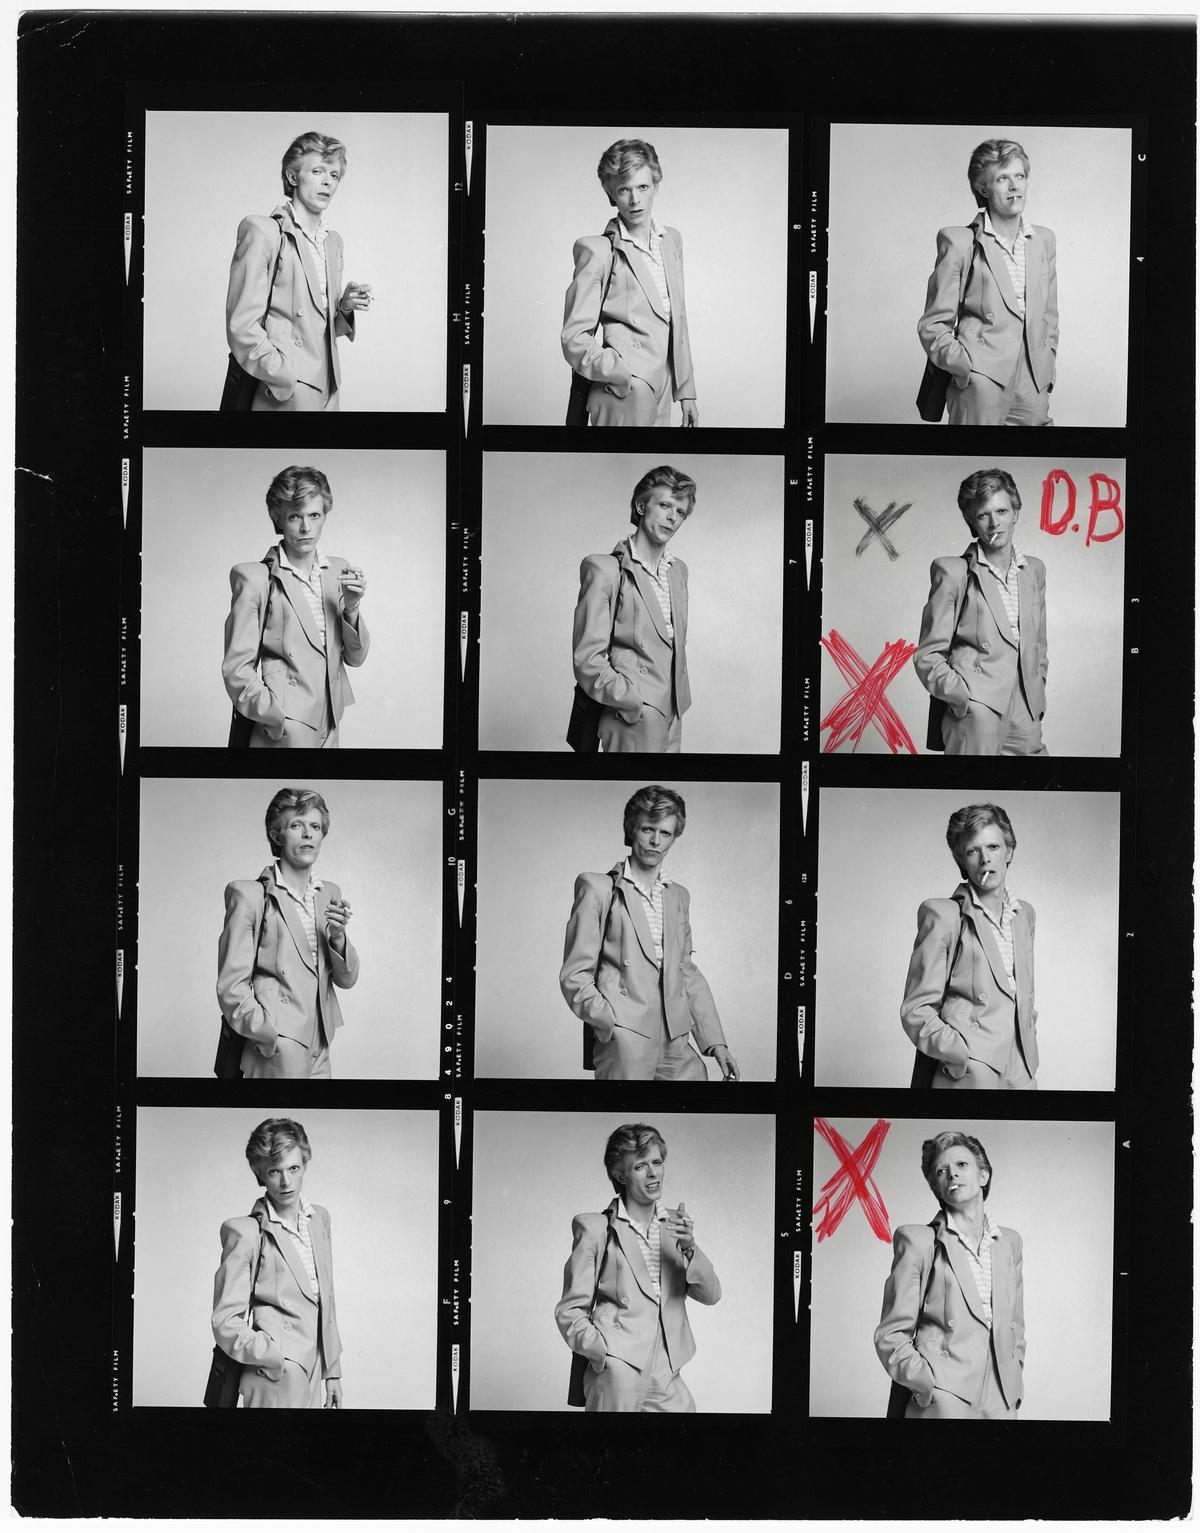 David Bowie contact sheet